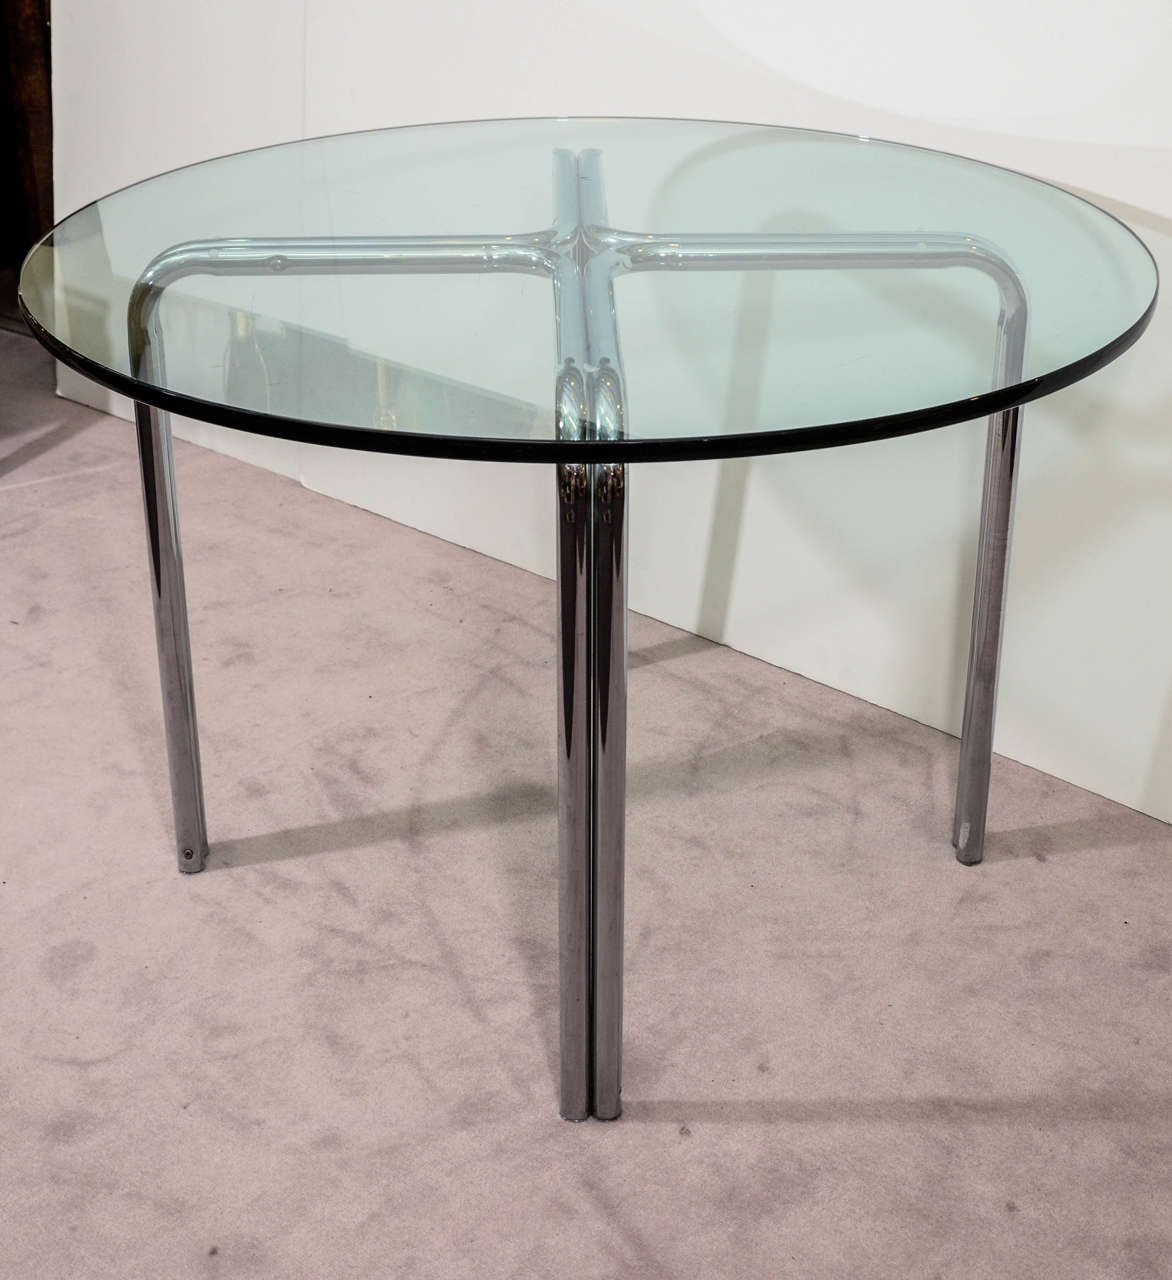 Century Dining Table With Circular Glass Top And Chrome Base Image 2